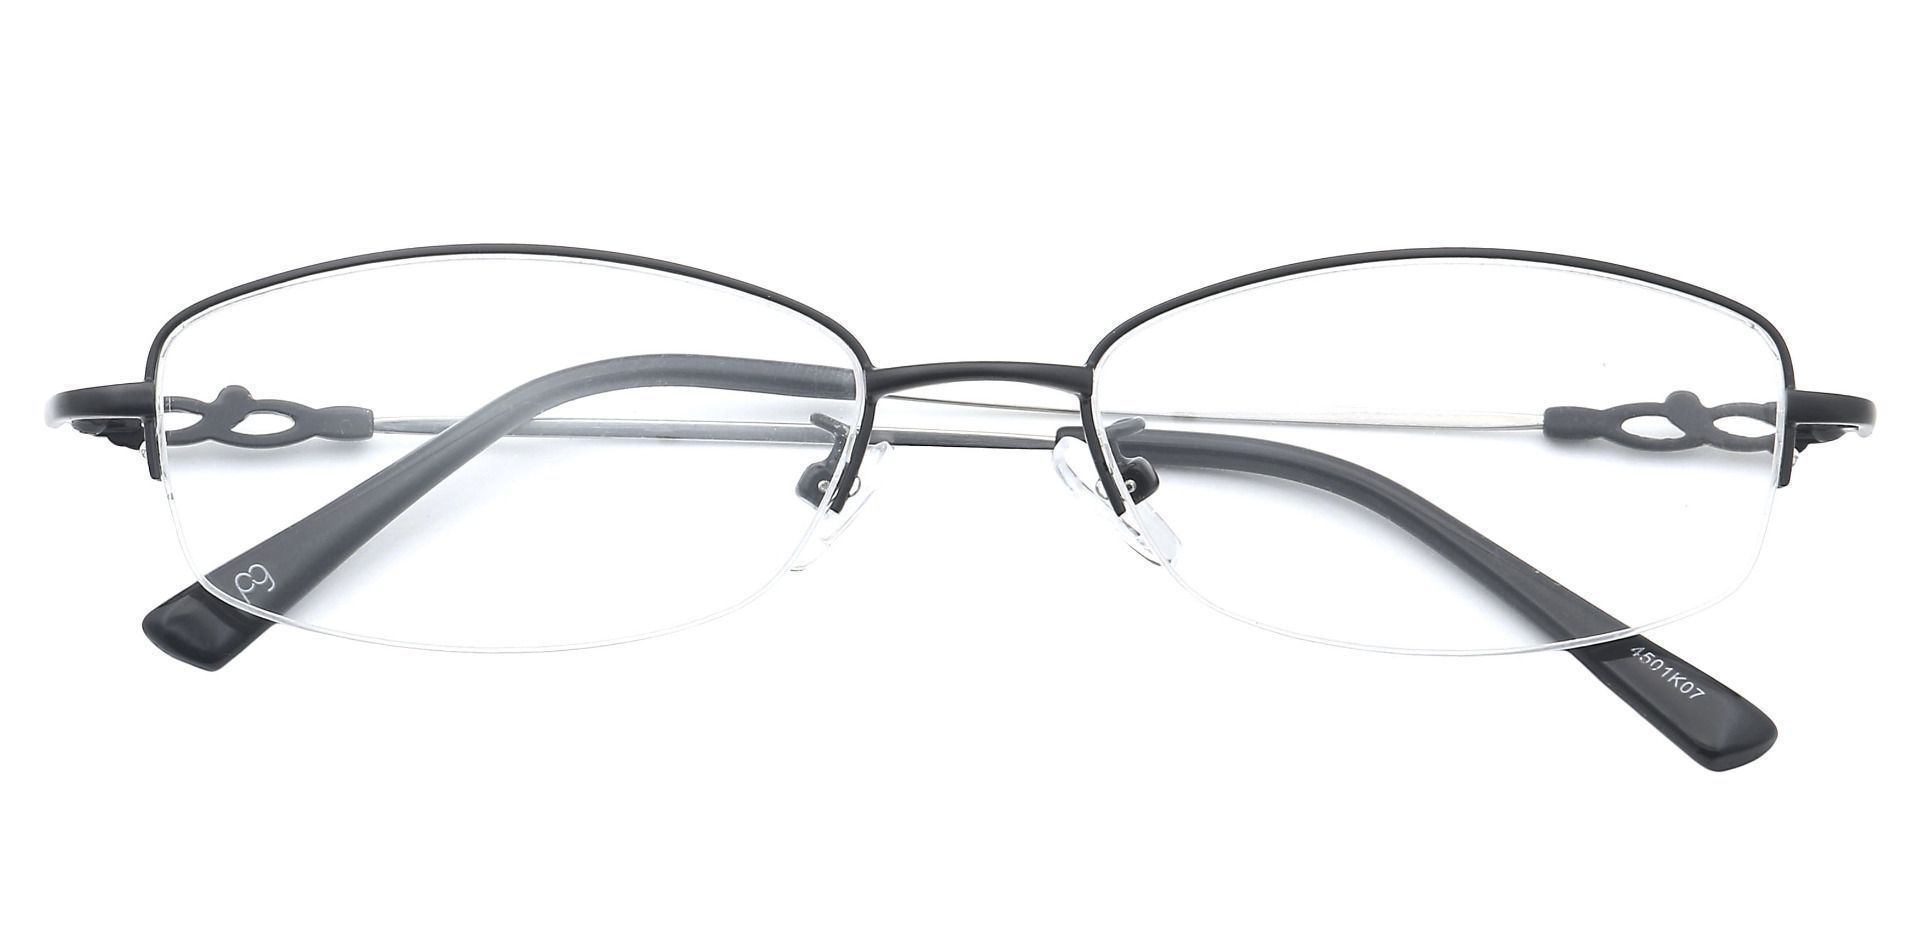 Meadowsweet Oval Non-Rx Glasses - Black